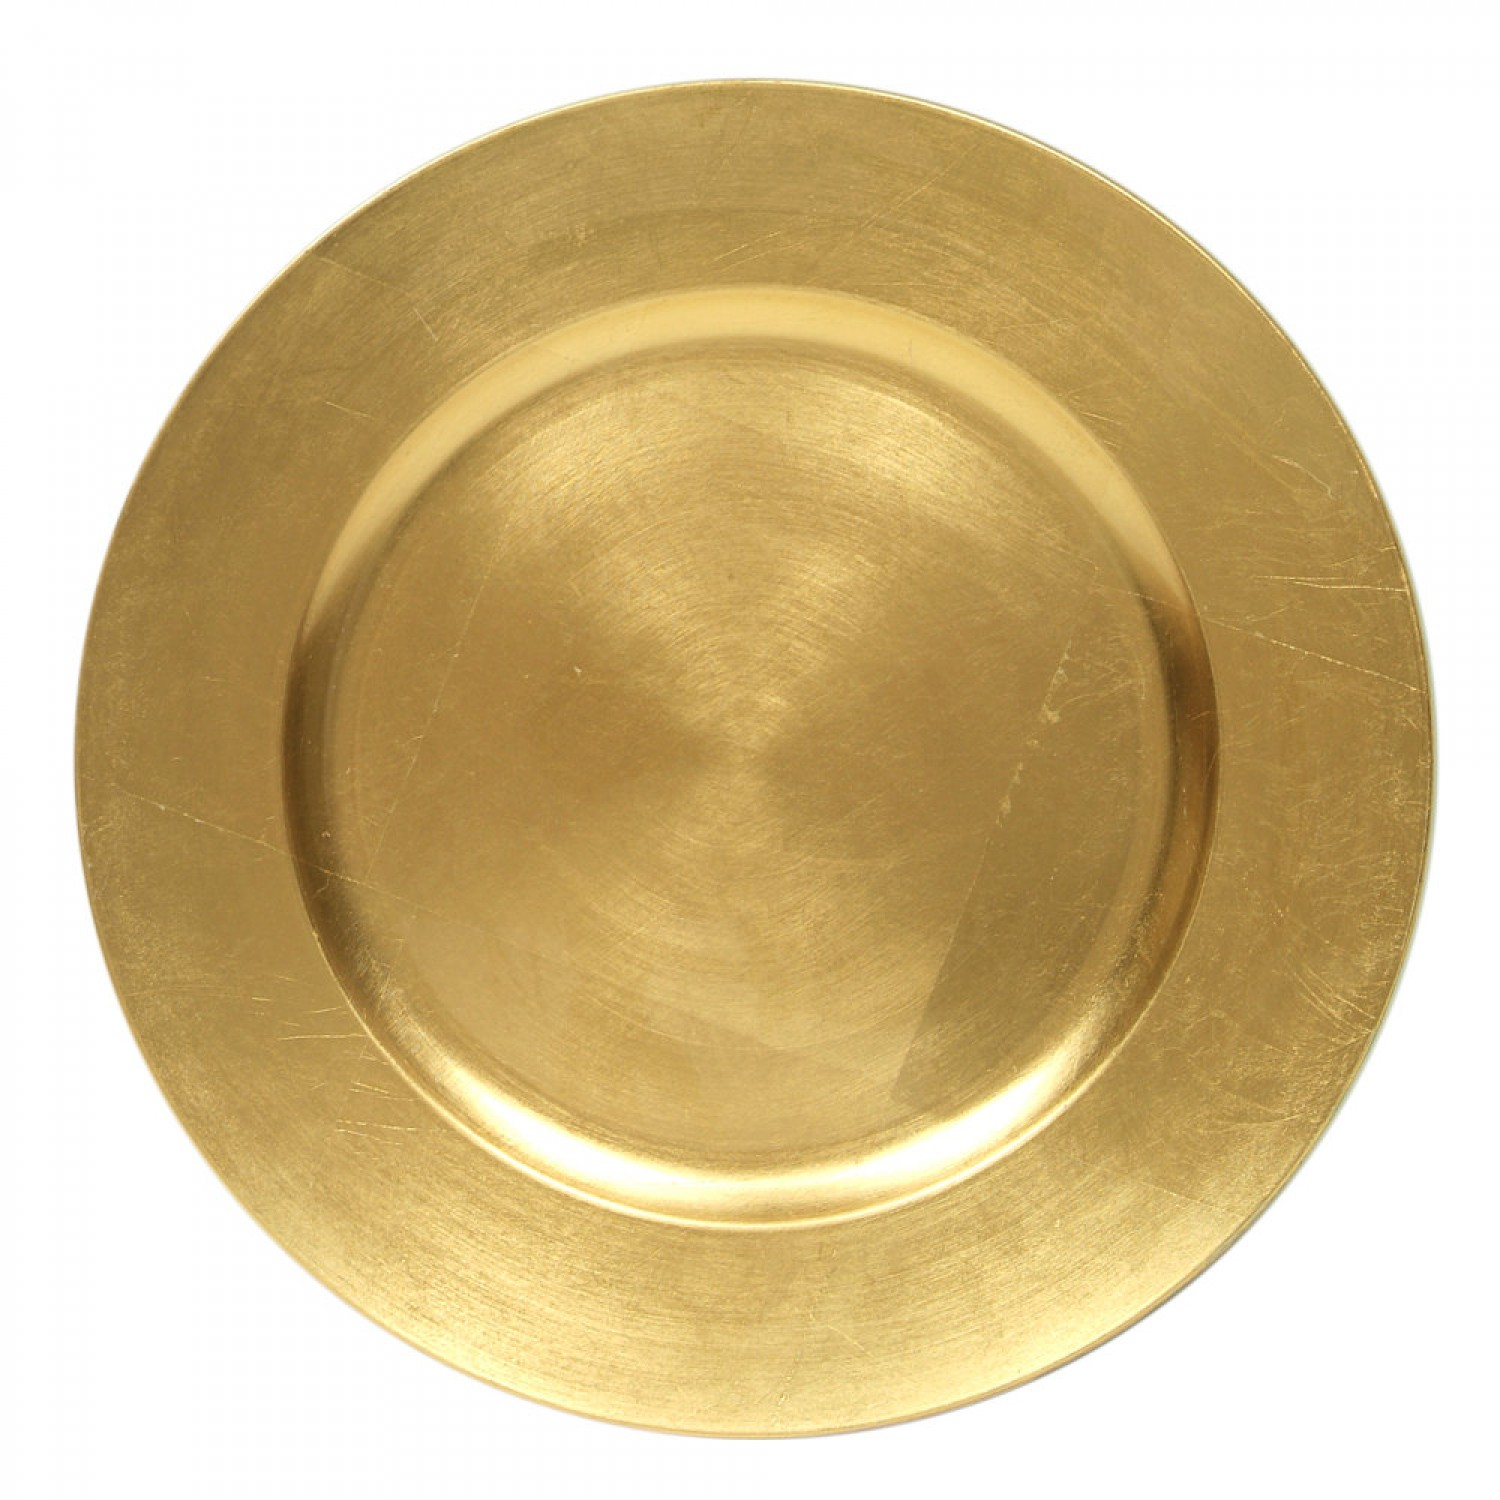 Round Acrylic Gold Charger Plate  sc 1 st  TigerChef & Charger Plates